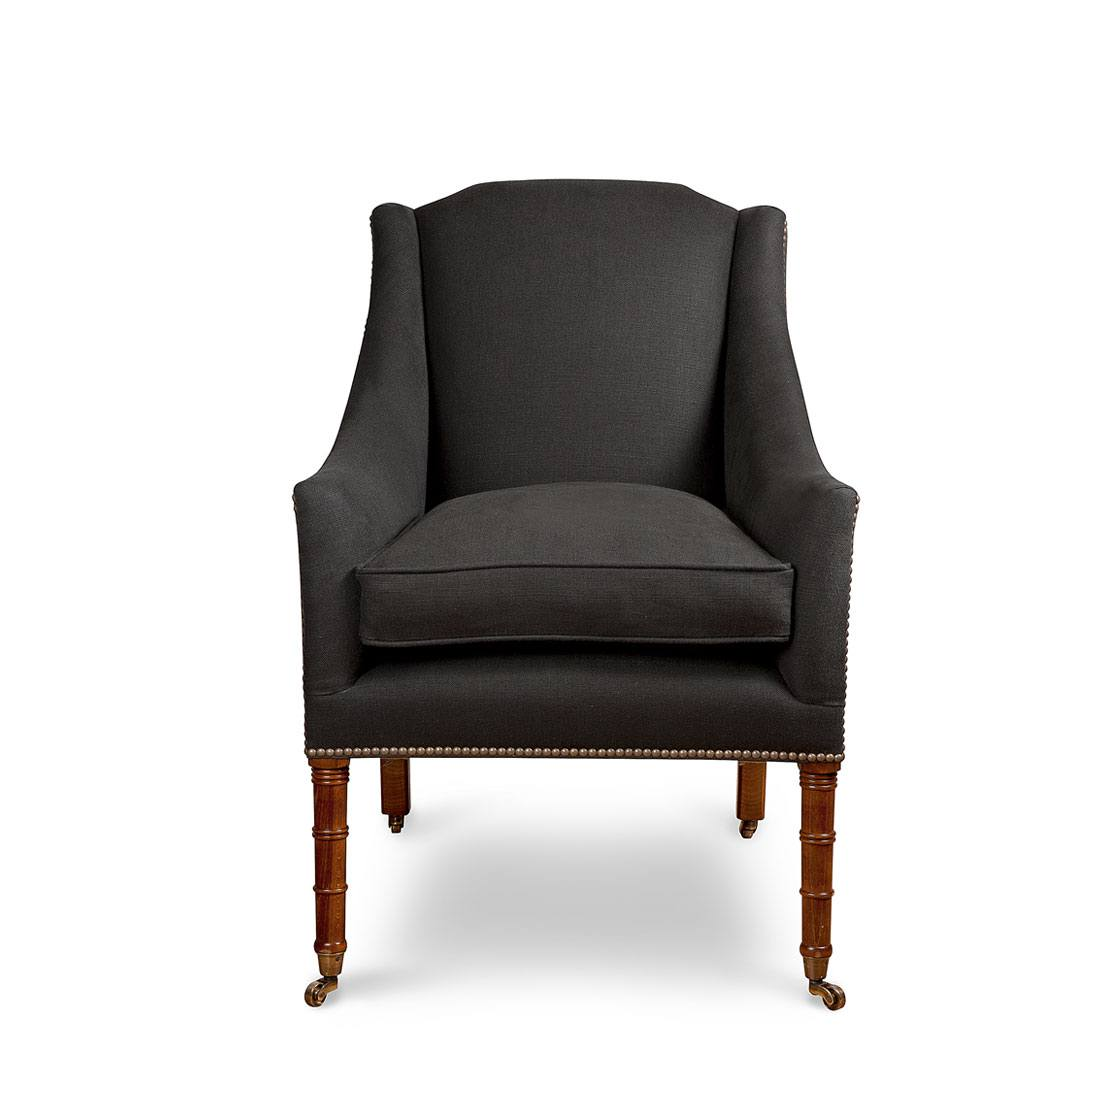 Alexandra Chair in Bantry Linen Espresso - Chairs - Beaumont & Fletcher